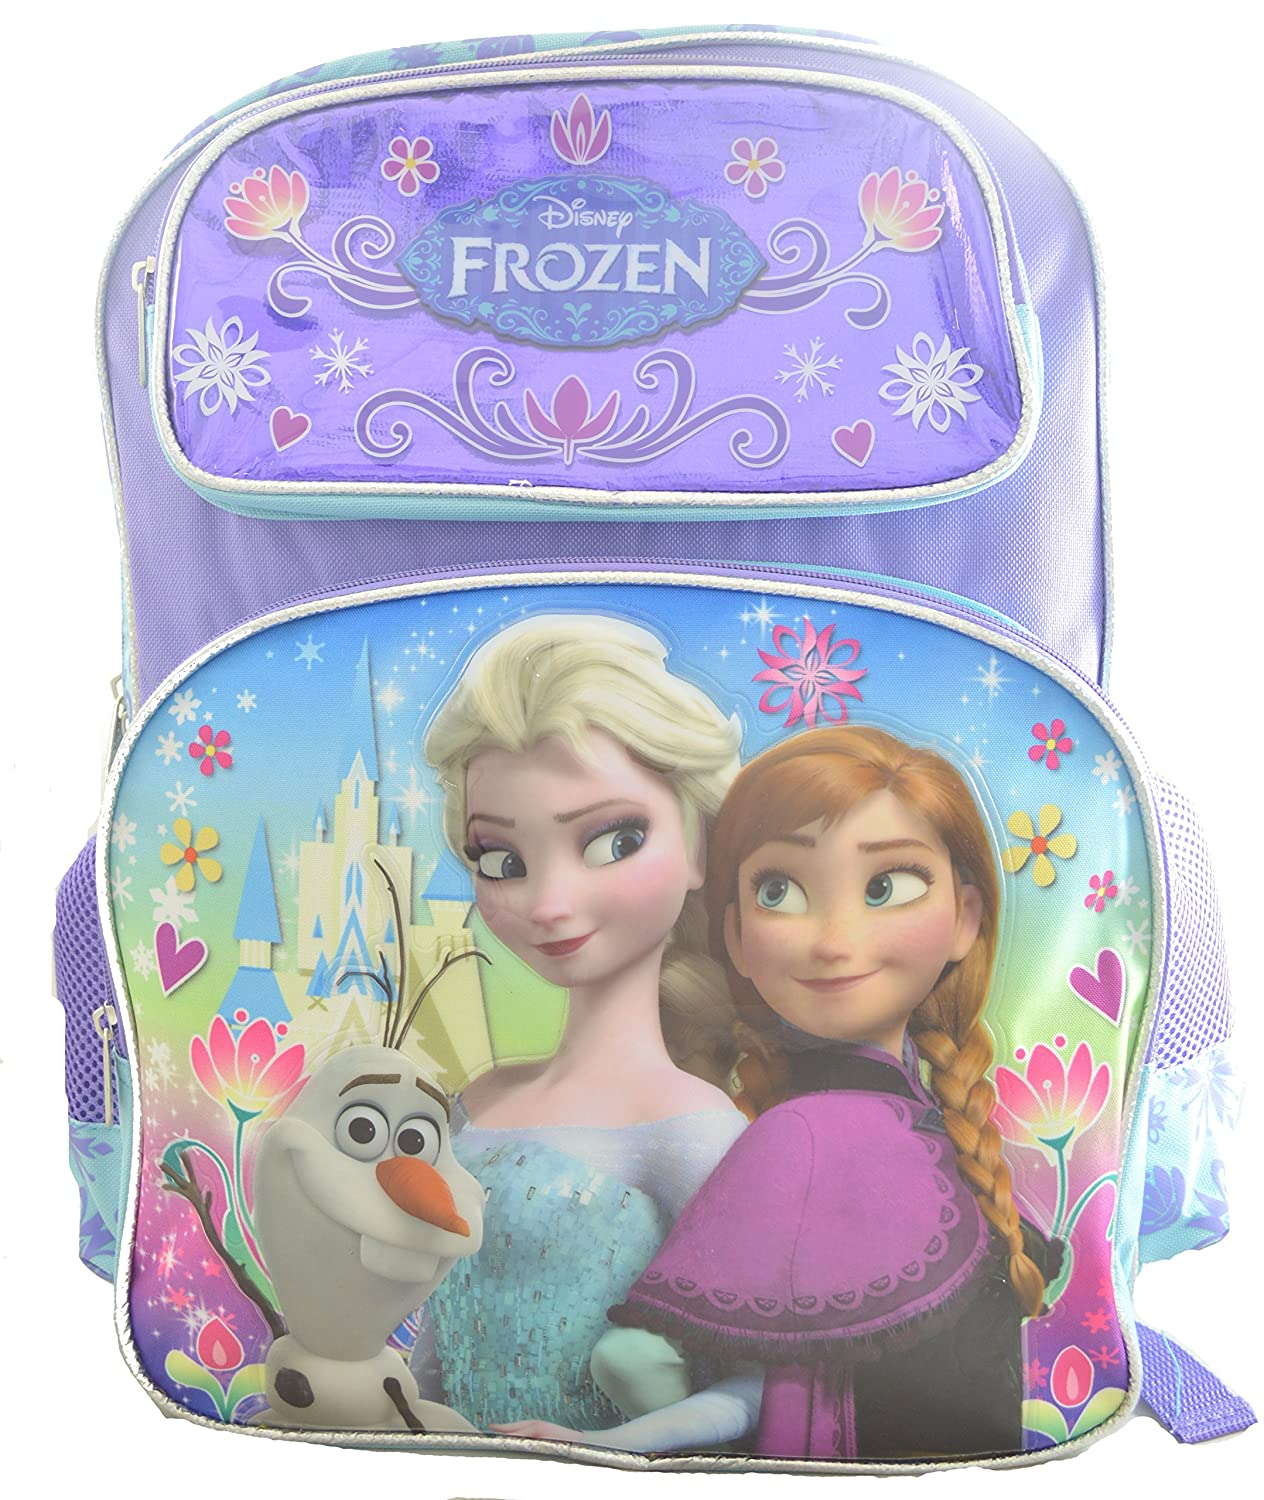 Disney Frozen Backpack, Elsa, Anna, Olaf, Large 16 School Bag